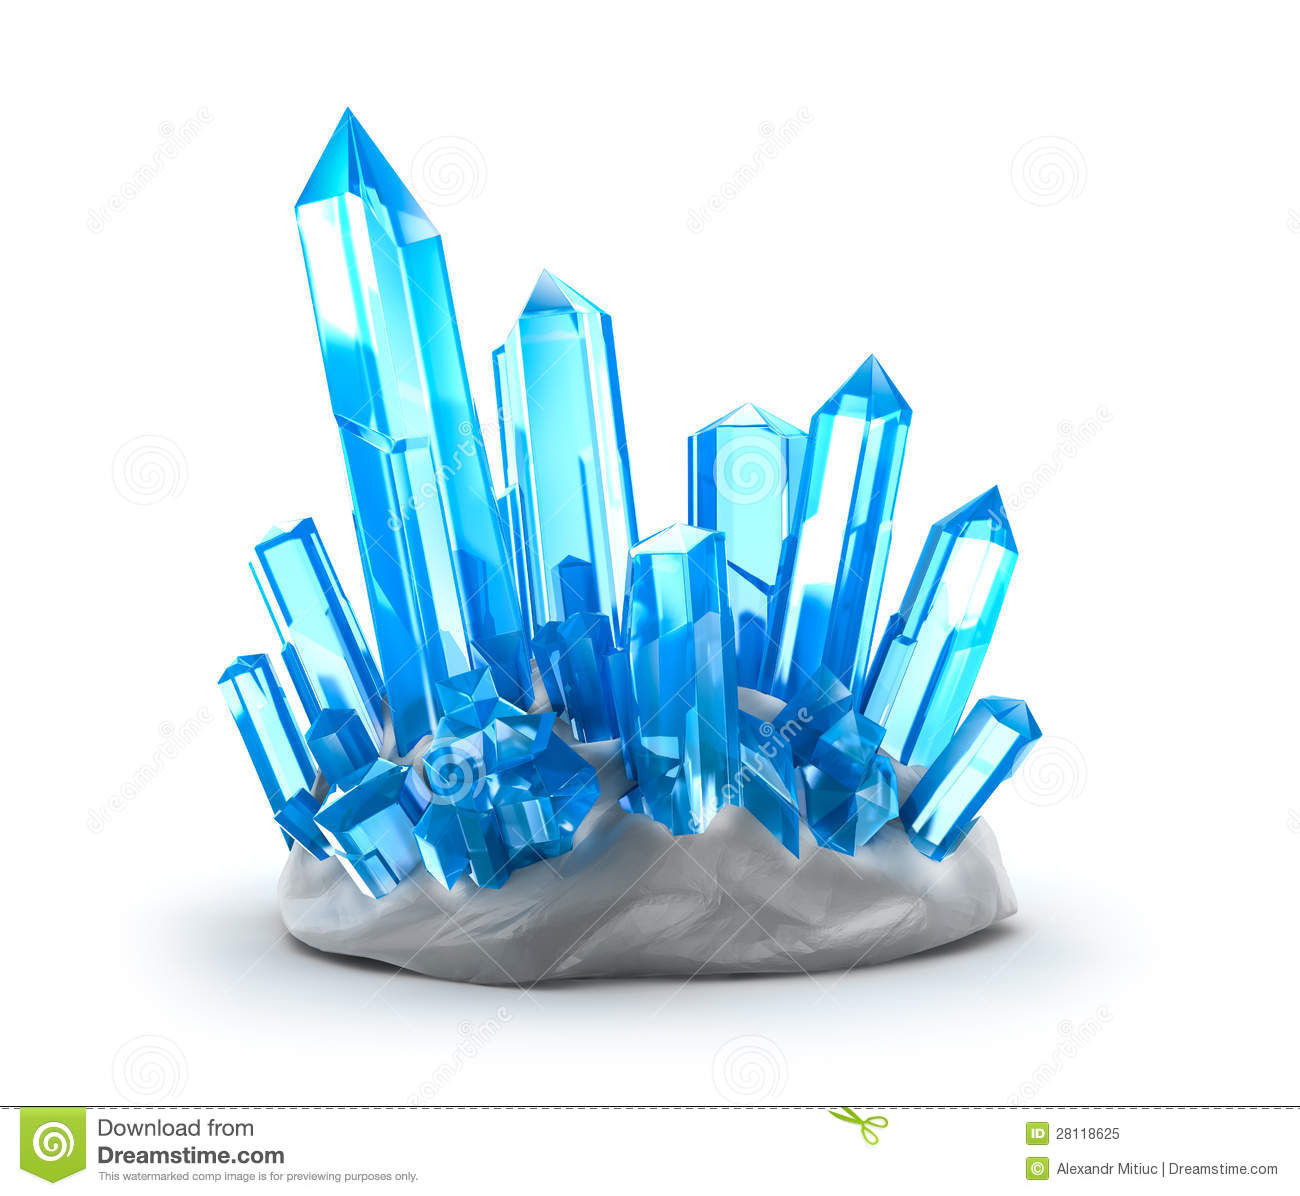 Crystals clipart stalactite Clipart Quartz drawings Download clipart